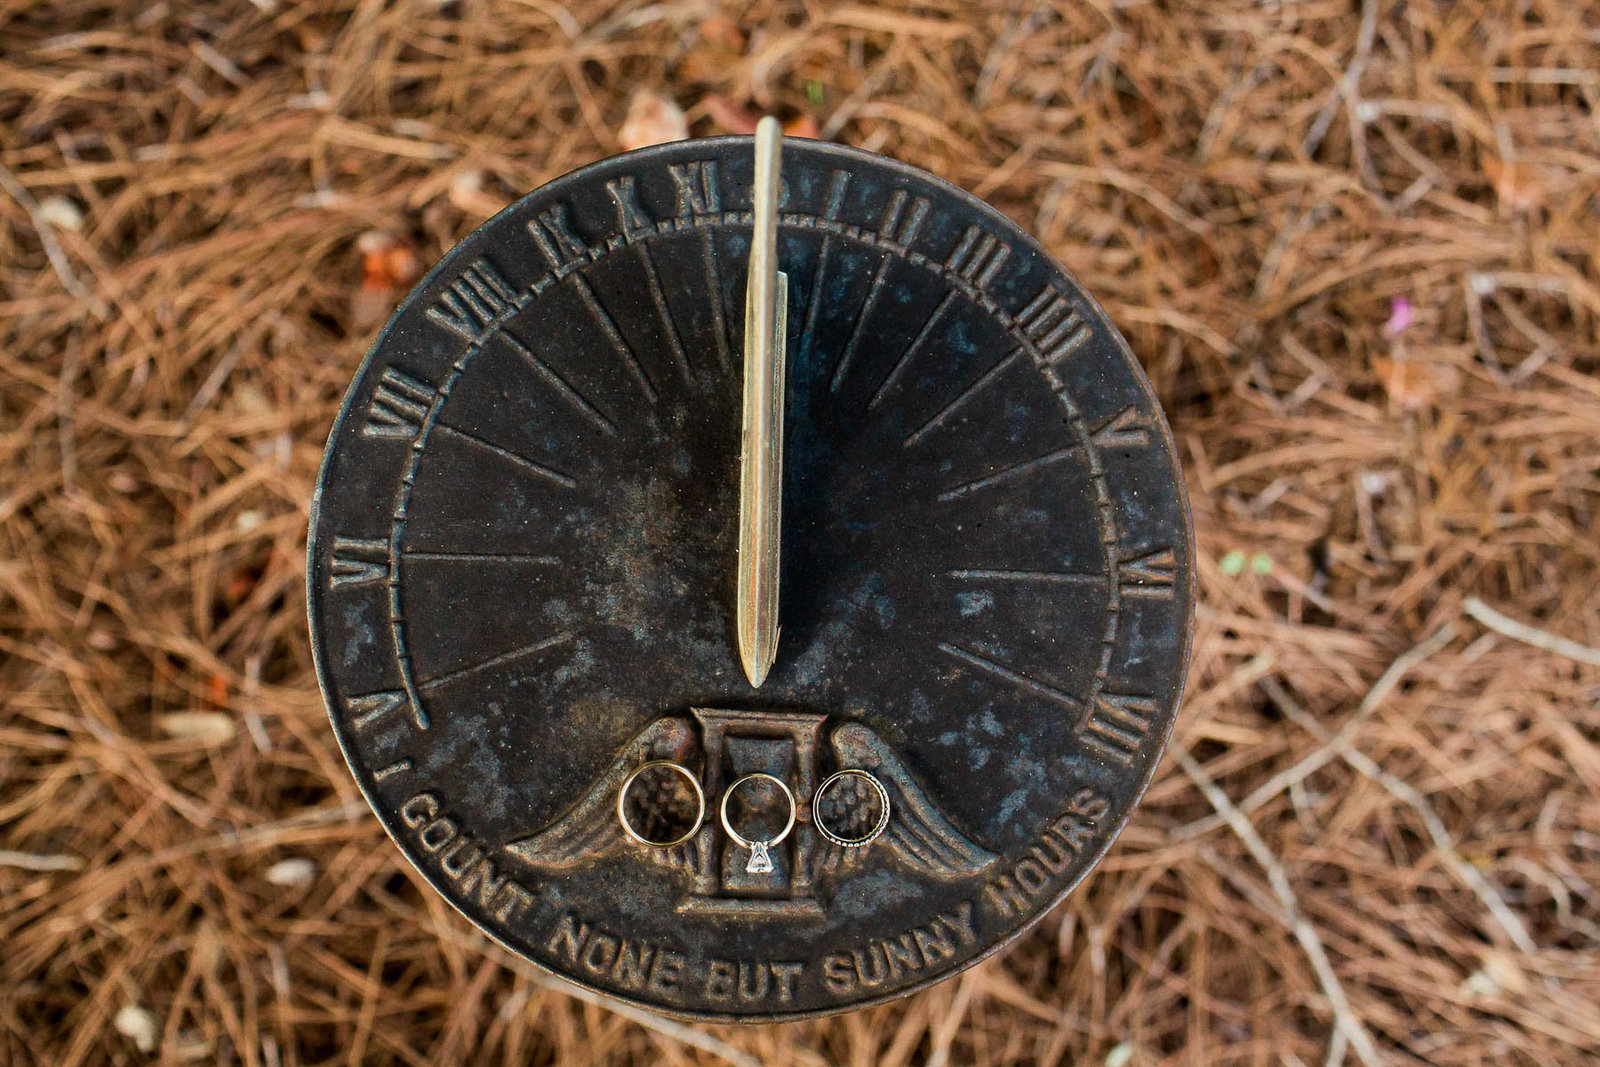 Rings rest on antique sundial, Oakland Plantation, Mt Pleasant, South Carolina